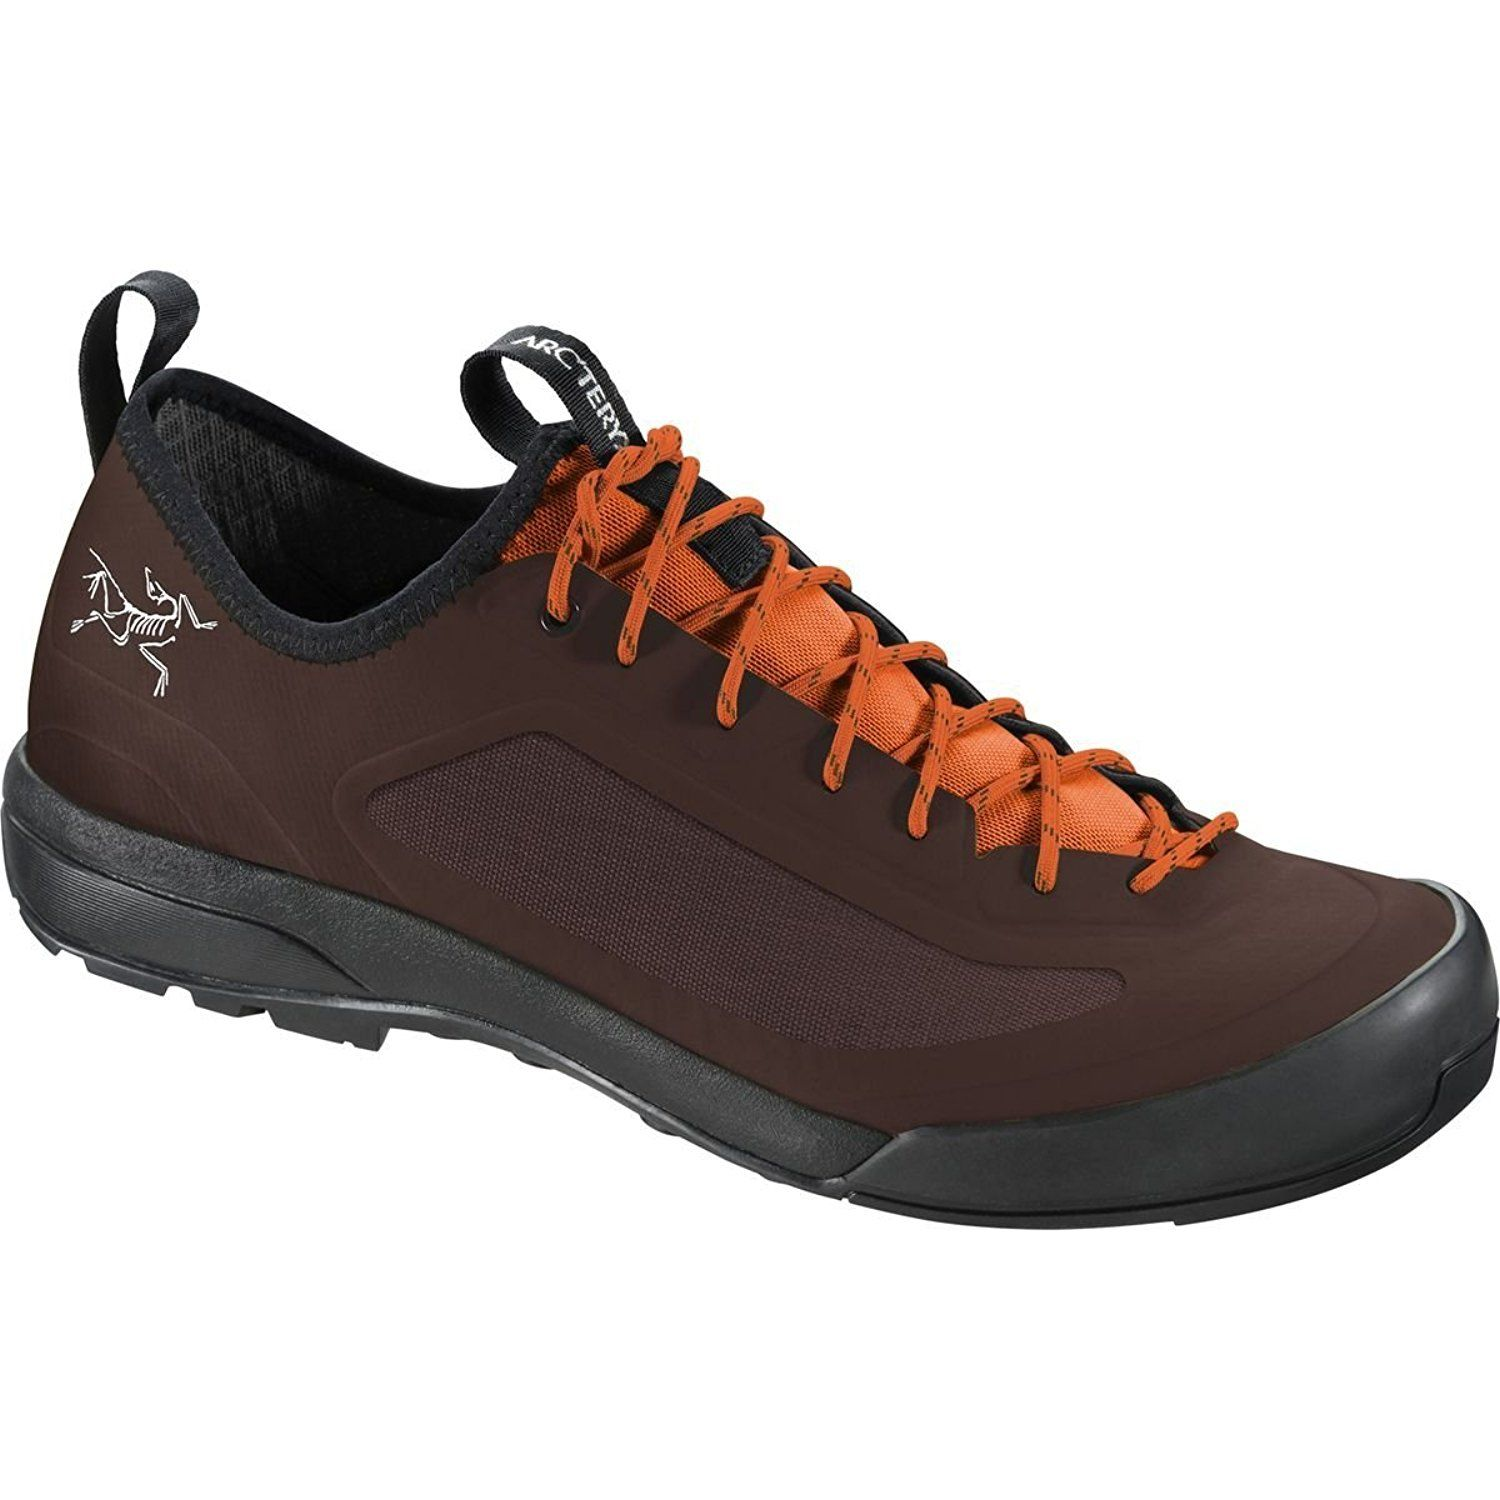 Arc'teryx Acrux SL Approach Shoe Women's * You can find